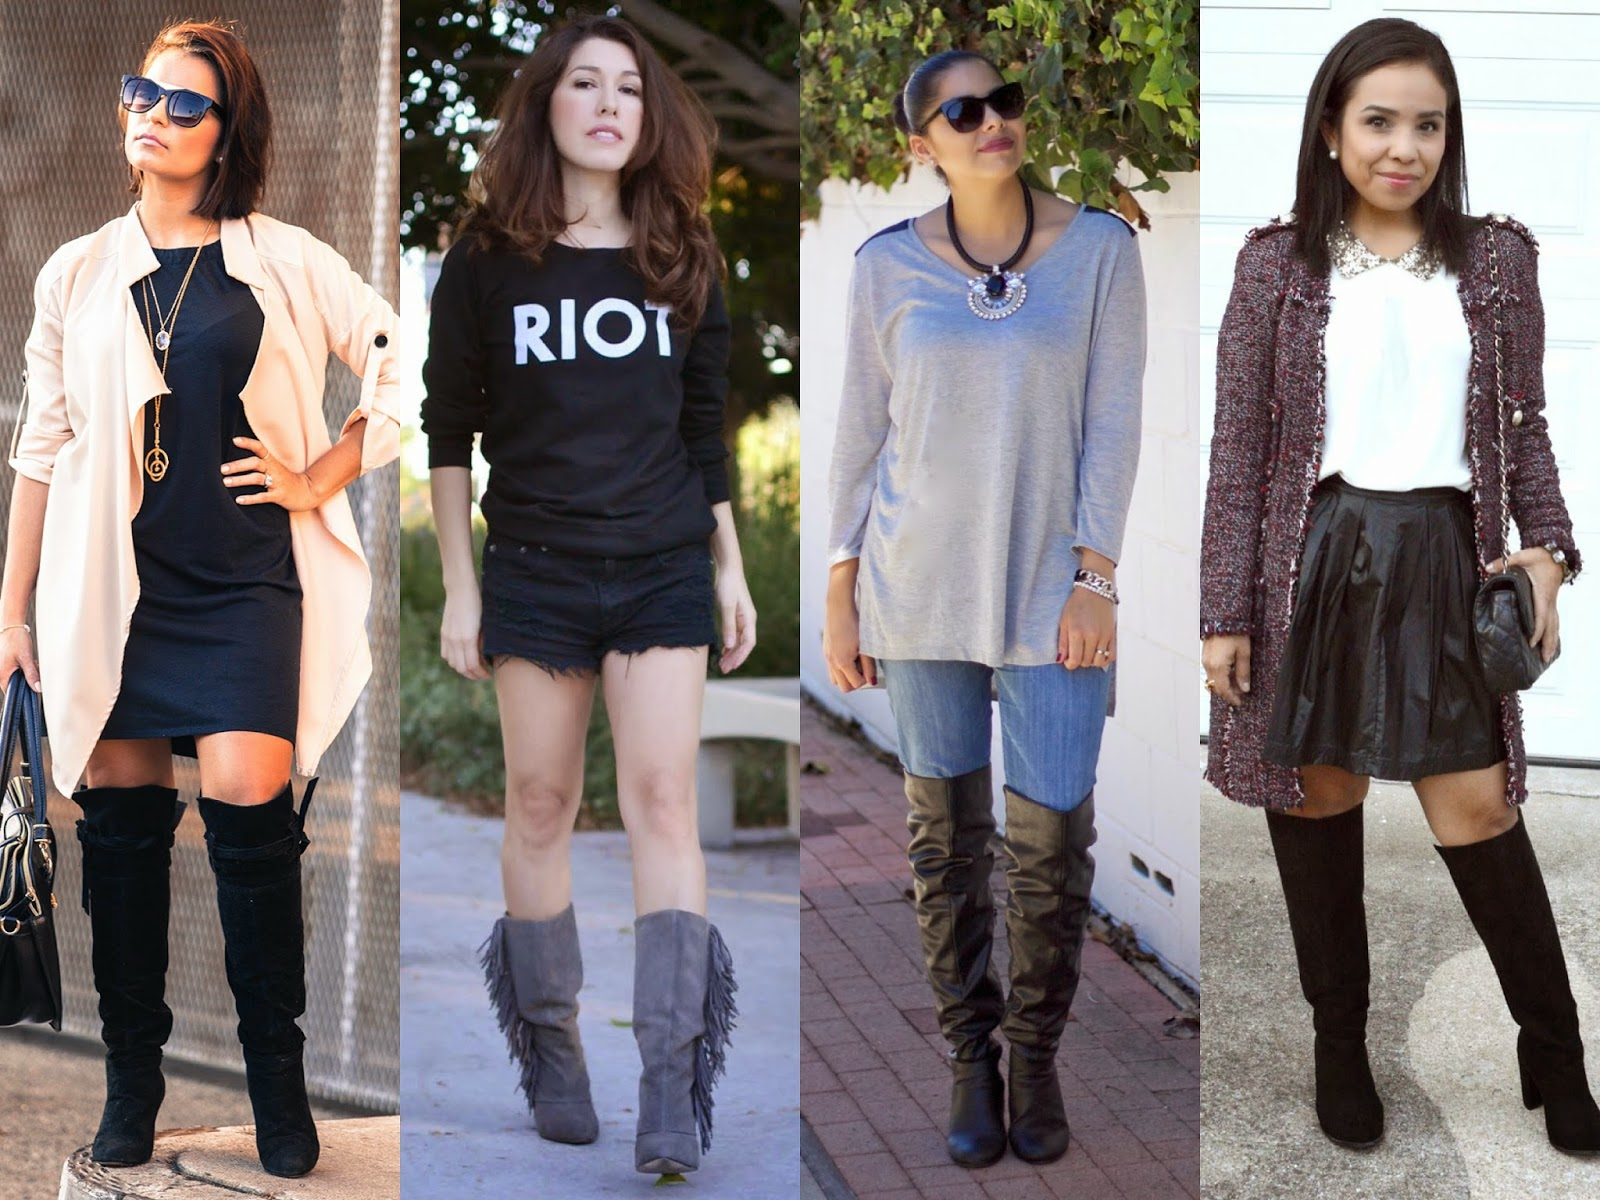 Blogger boot collaboration, blogger collaboration, how to wear boots 2014, how to style boots 2014, how to style boots, how to wear boots this Fall, how to wear boots this winter, bloggers wear boots, four ways to wear boots, different ways to style boots